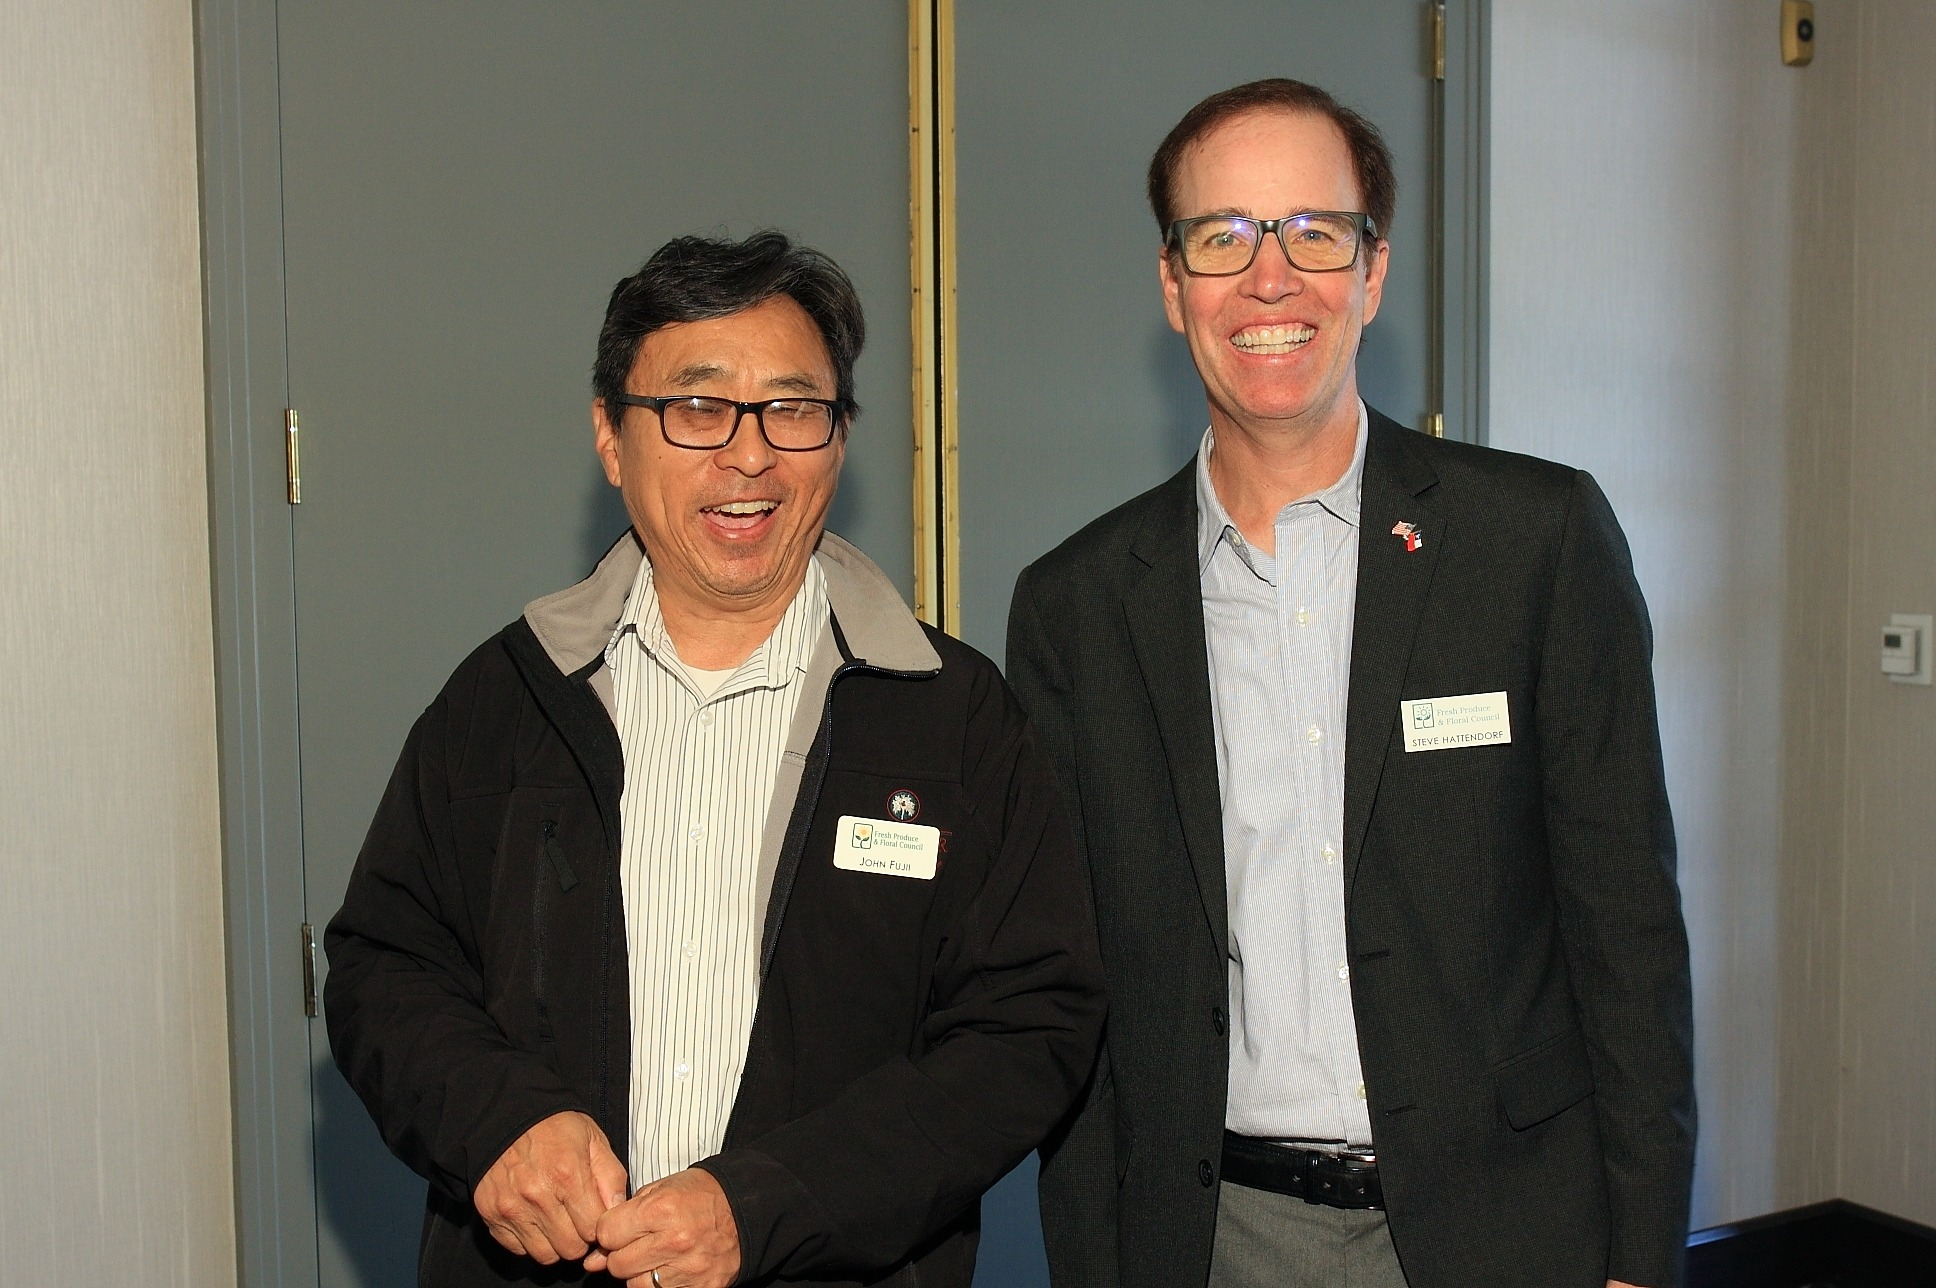 John Fujii of Gelson's Markets with Steve Hattendorf from the Chilean Fresh Fruit Association